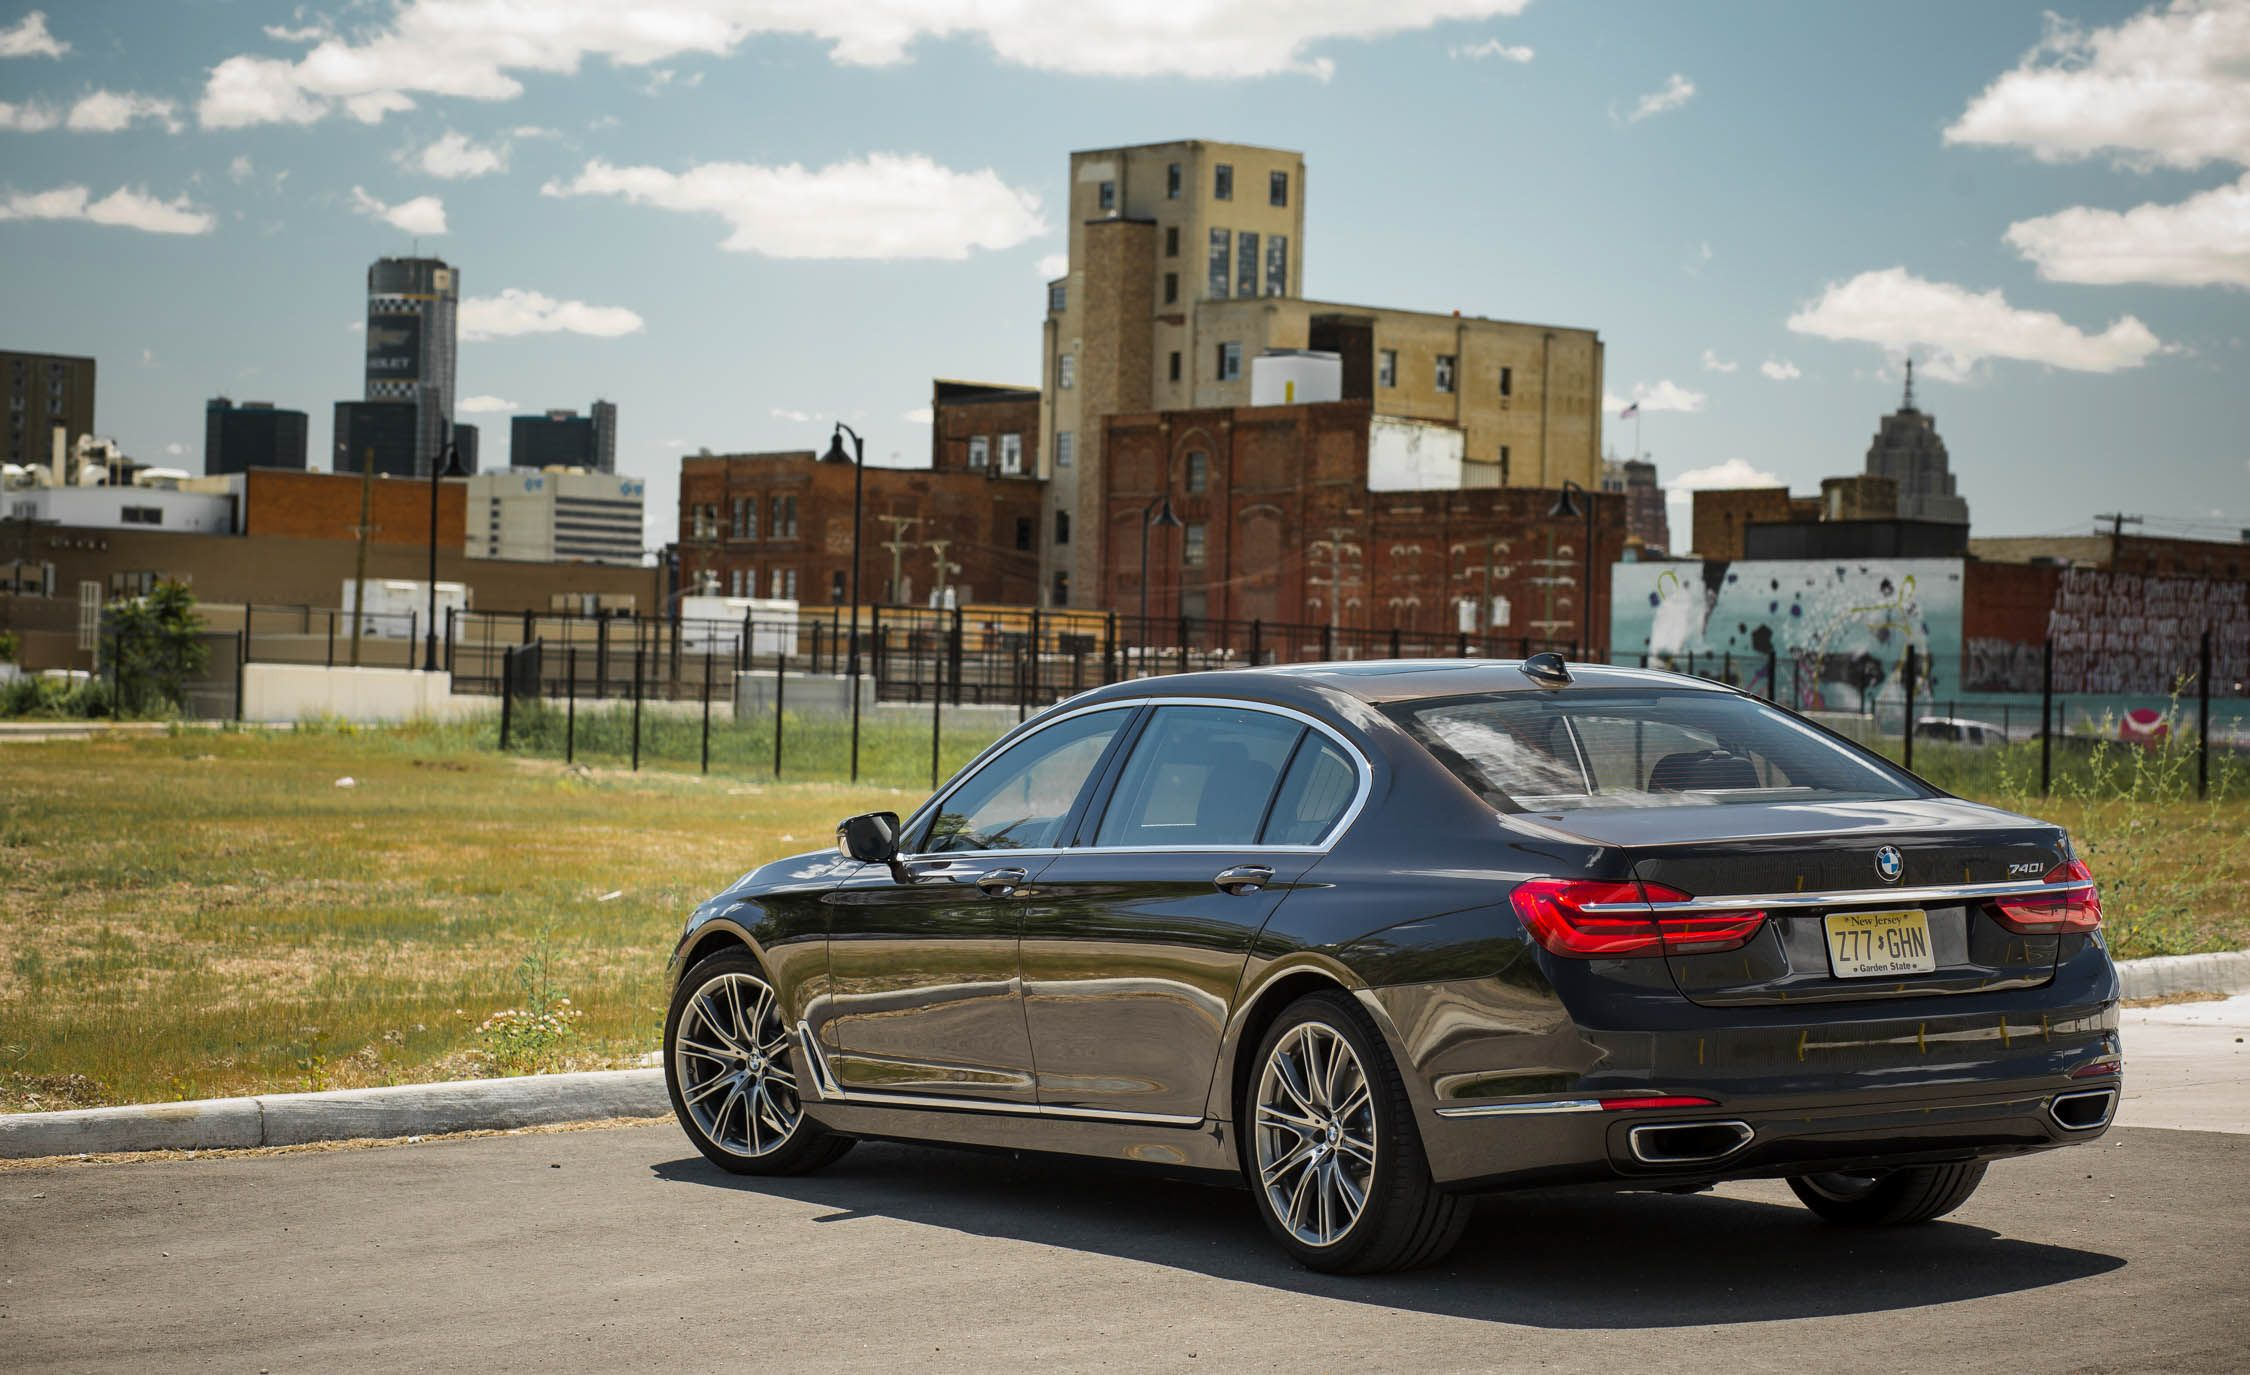 2018 Bmw 7 Series Warranty And Maintenance Coverage Review Car